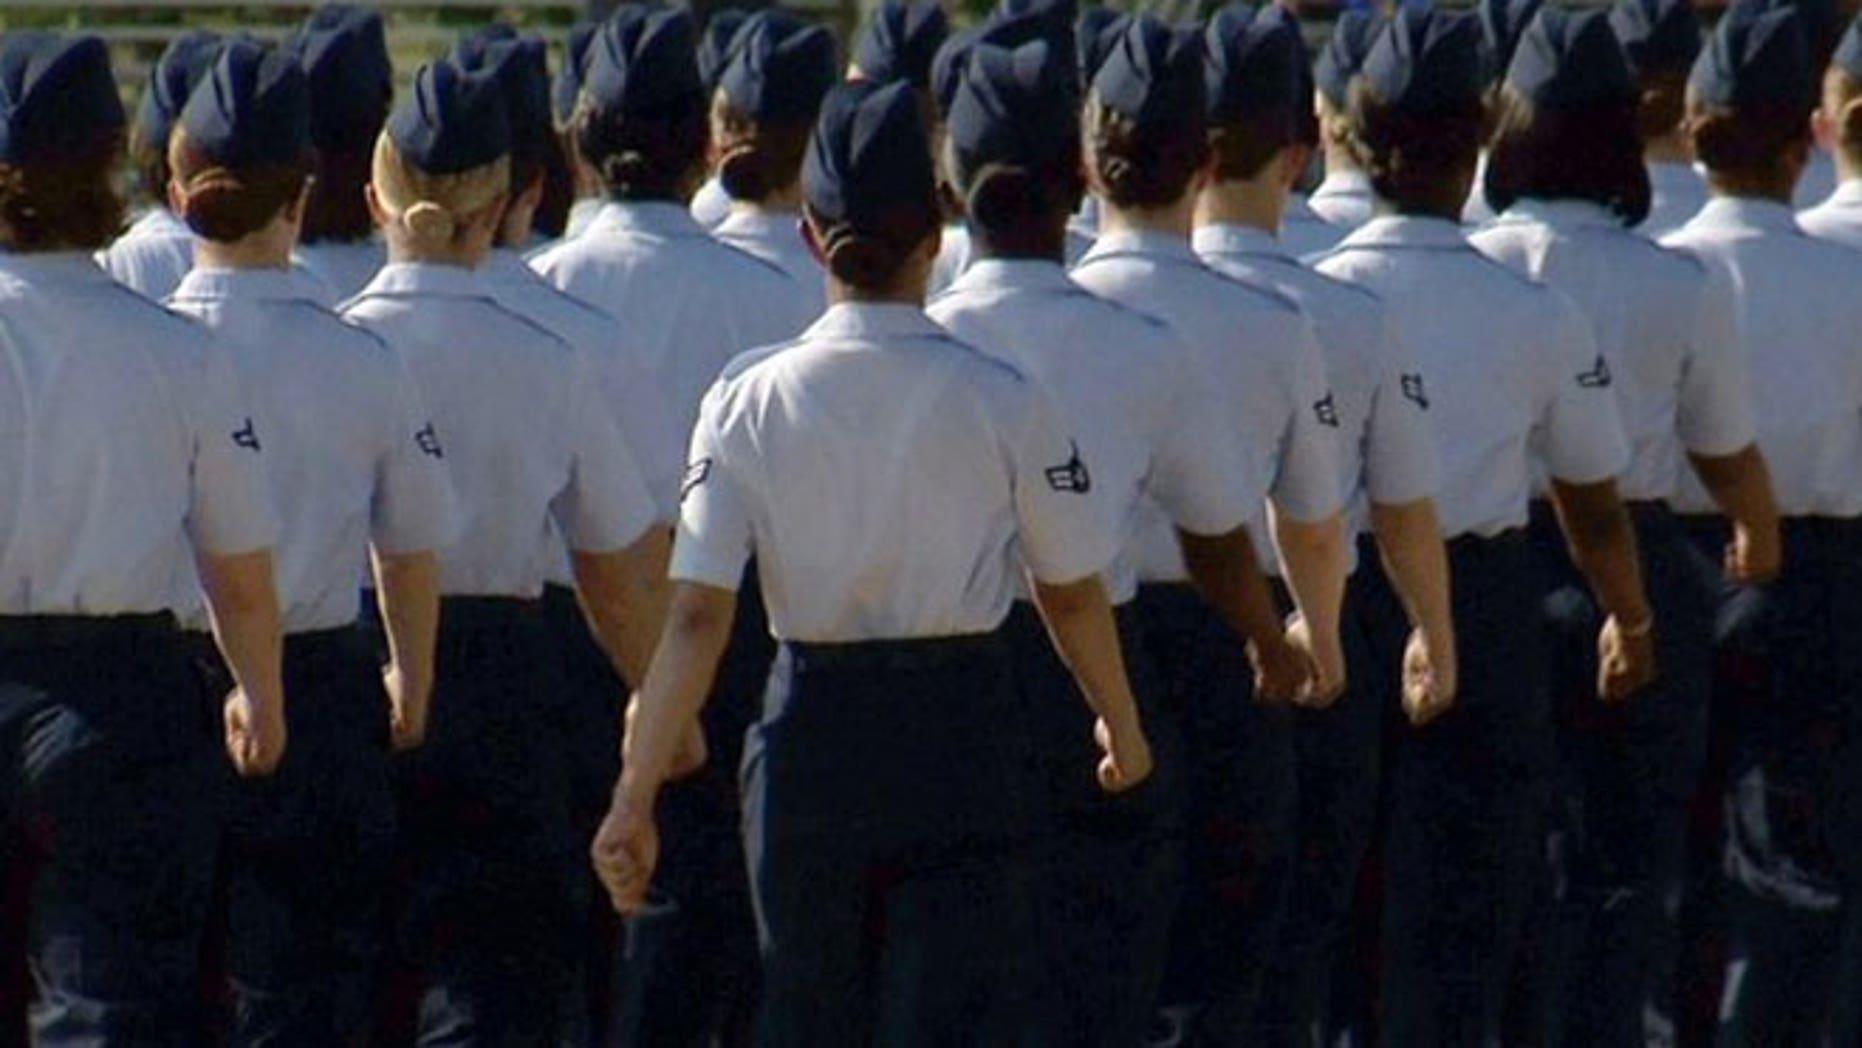 In this June 22, 2012, image made from video, female airmen march during graduation at Lackland Air Force Base in San Antonio.